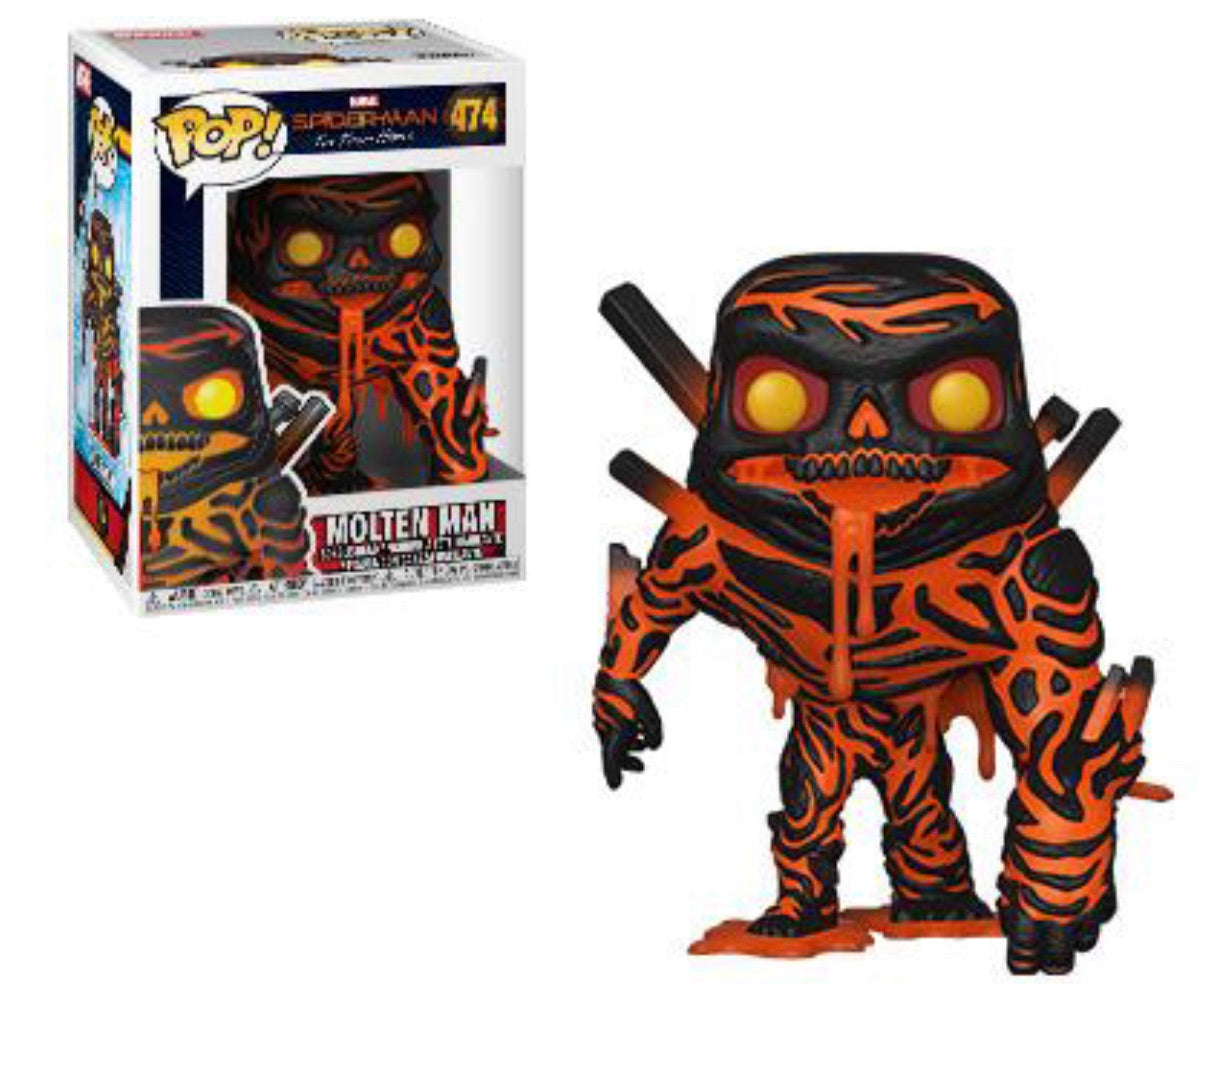 SPIDER-MAN: FAR FROM HOME FUNKO POP! MOLTEN MAN #474 (PRE-ORDER)